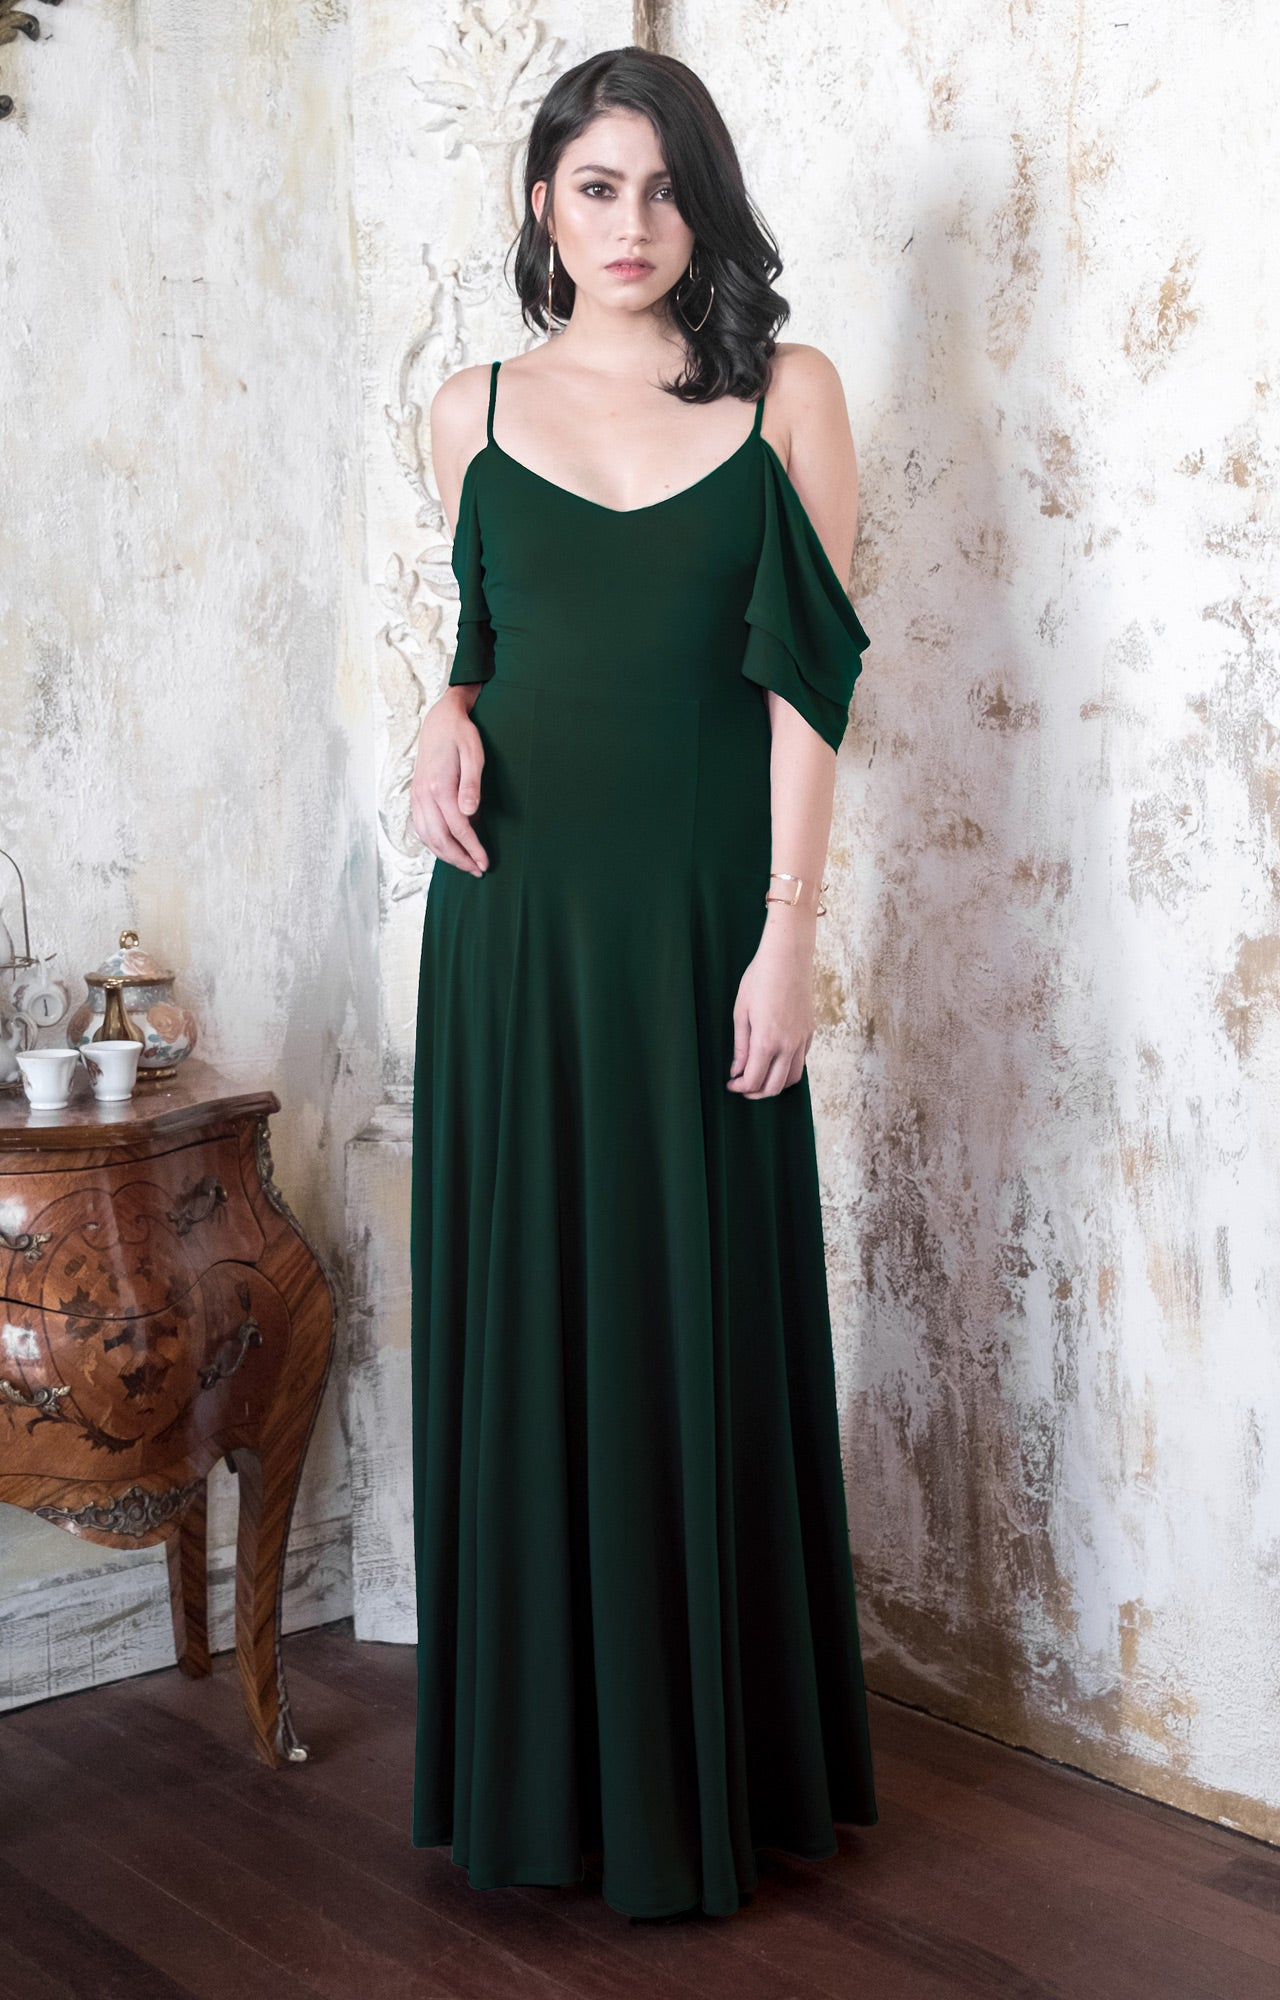 50814051ee6 Bridesmaid Cocktail Maxi Dress Party Wedding Guest. VZ92267   Maxi Dresses